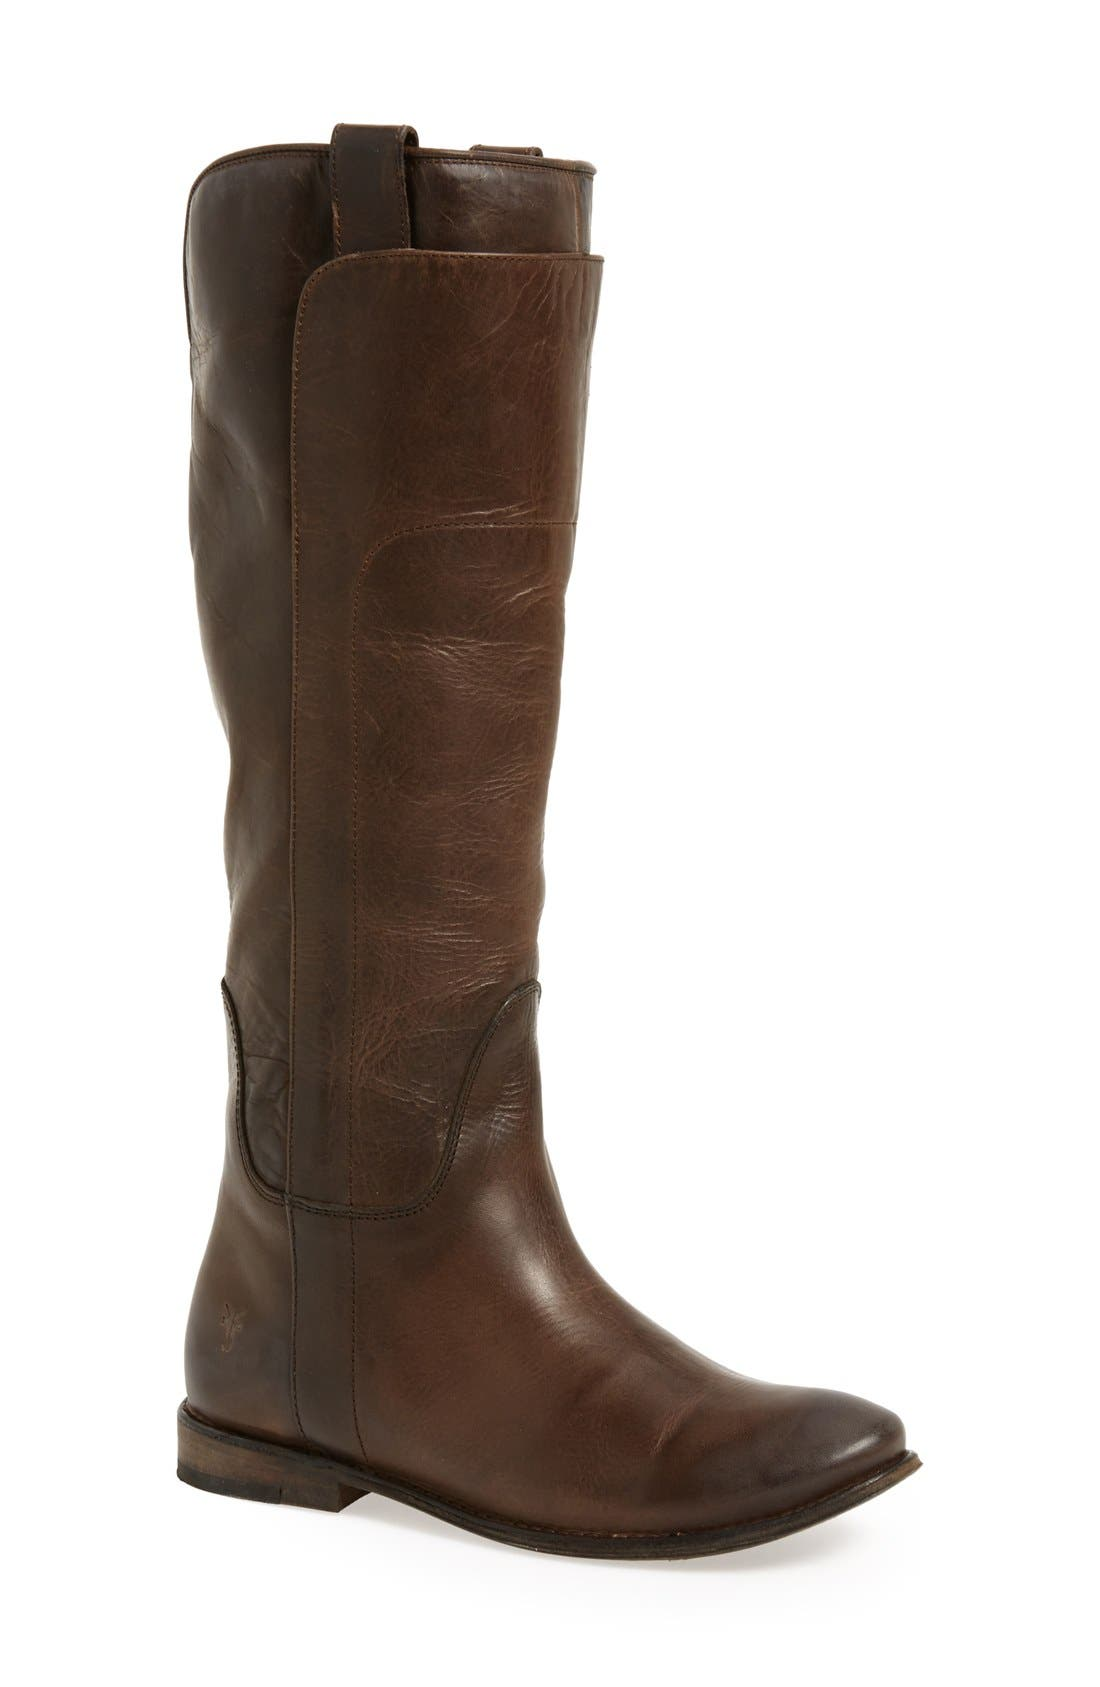 'Paige' Tall Riding Boot,                         Main,                         color, 020